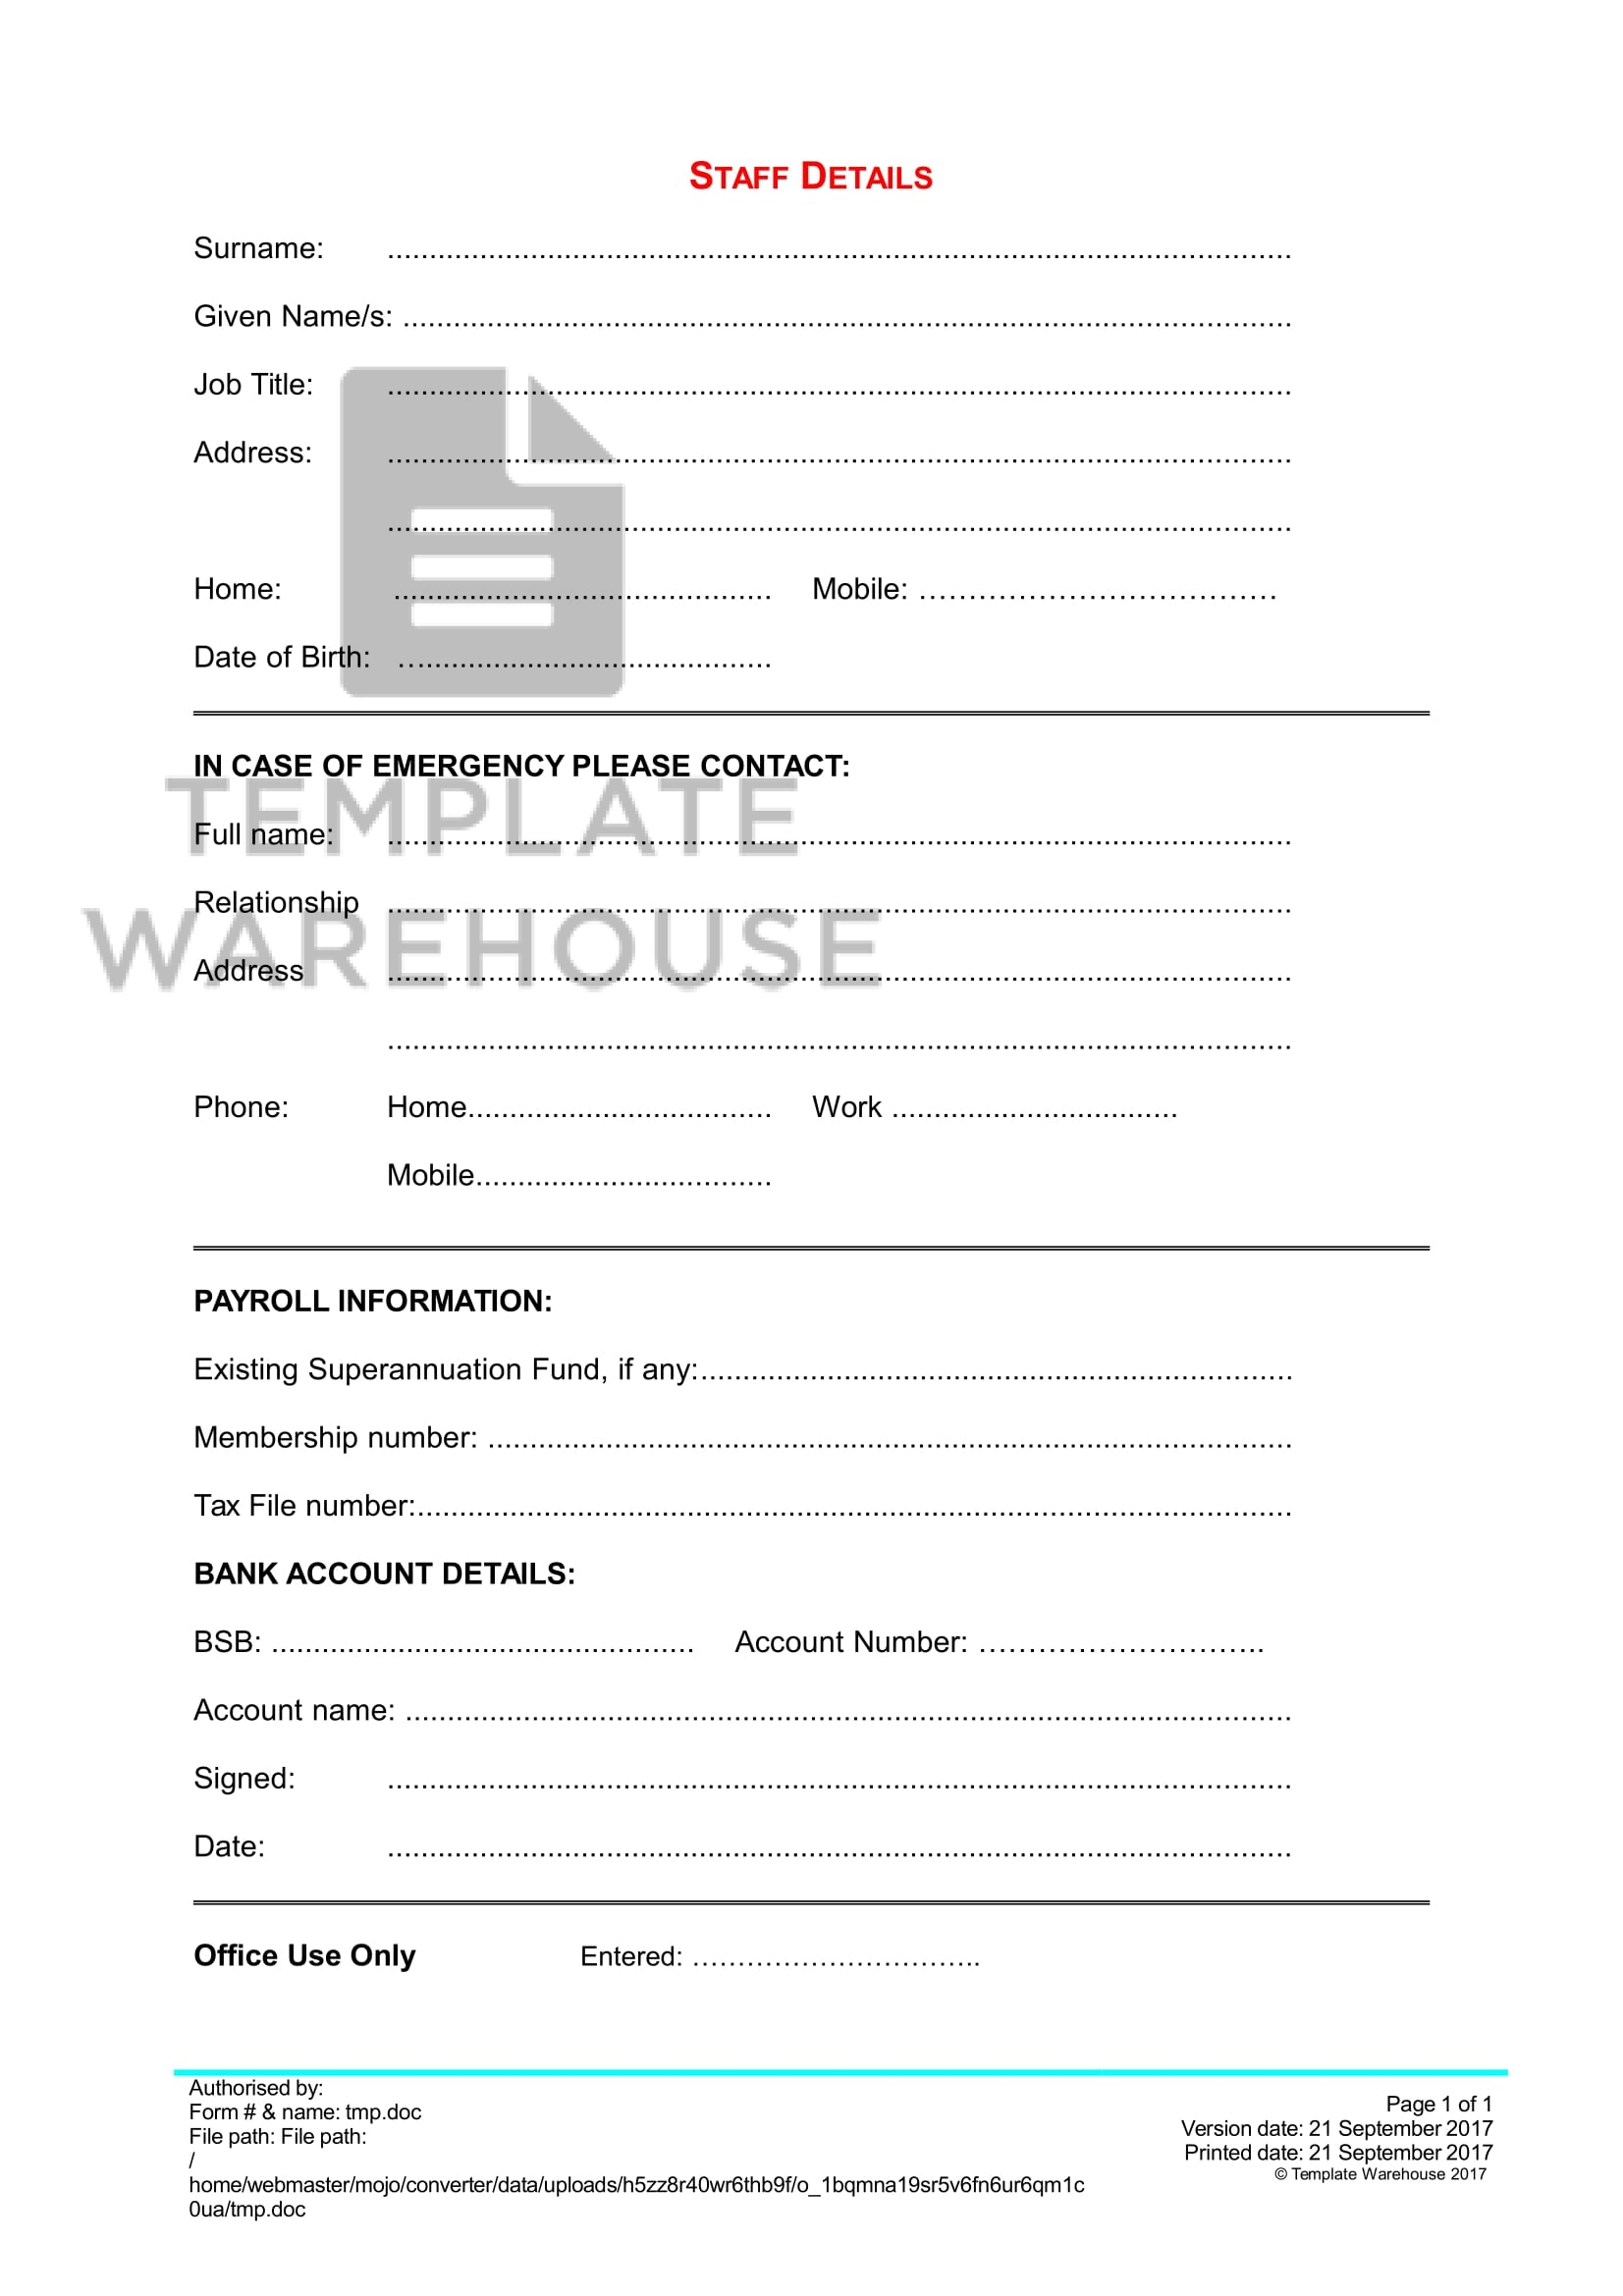 HRM-01-004 Staff Details Form – Template Warehouse